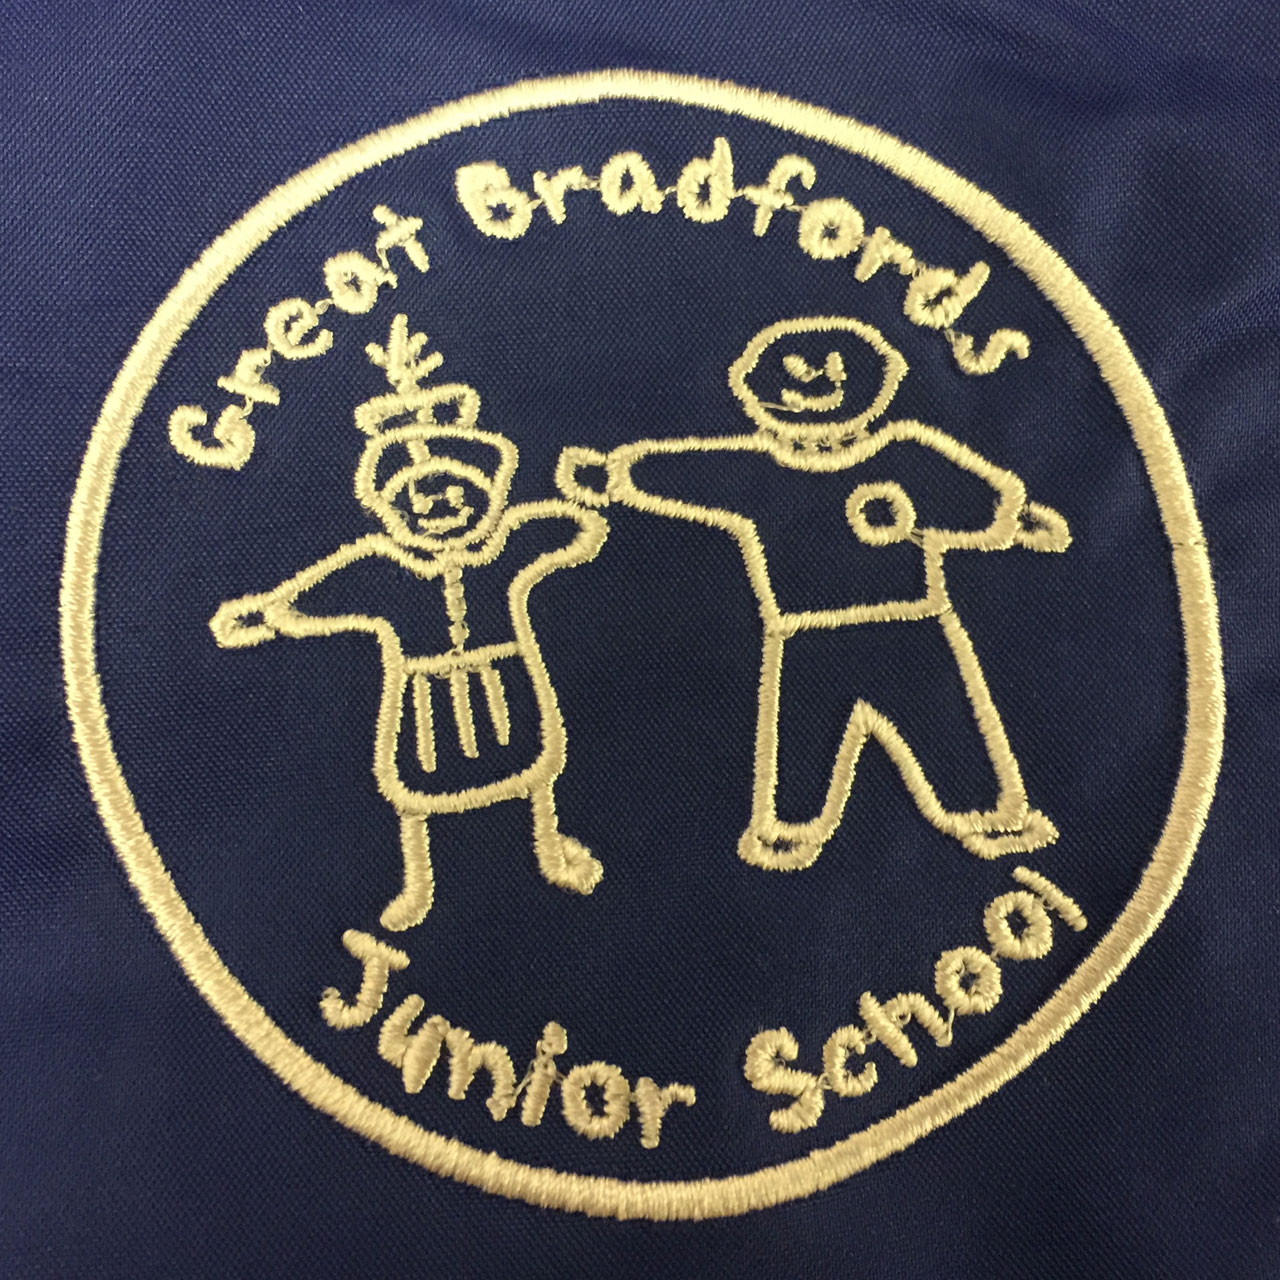 Embroidered Schoolwear by Jageto Embroidery and Print in Braintree, Essex in the UK